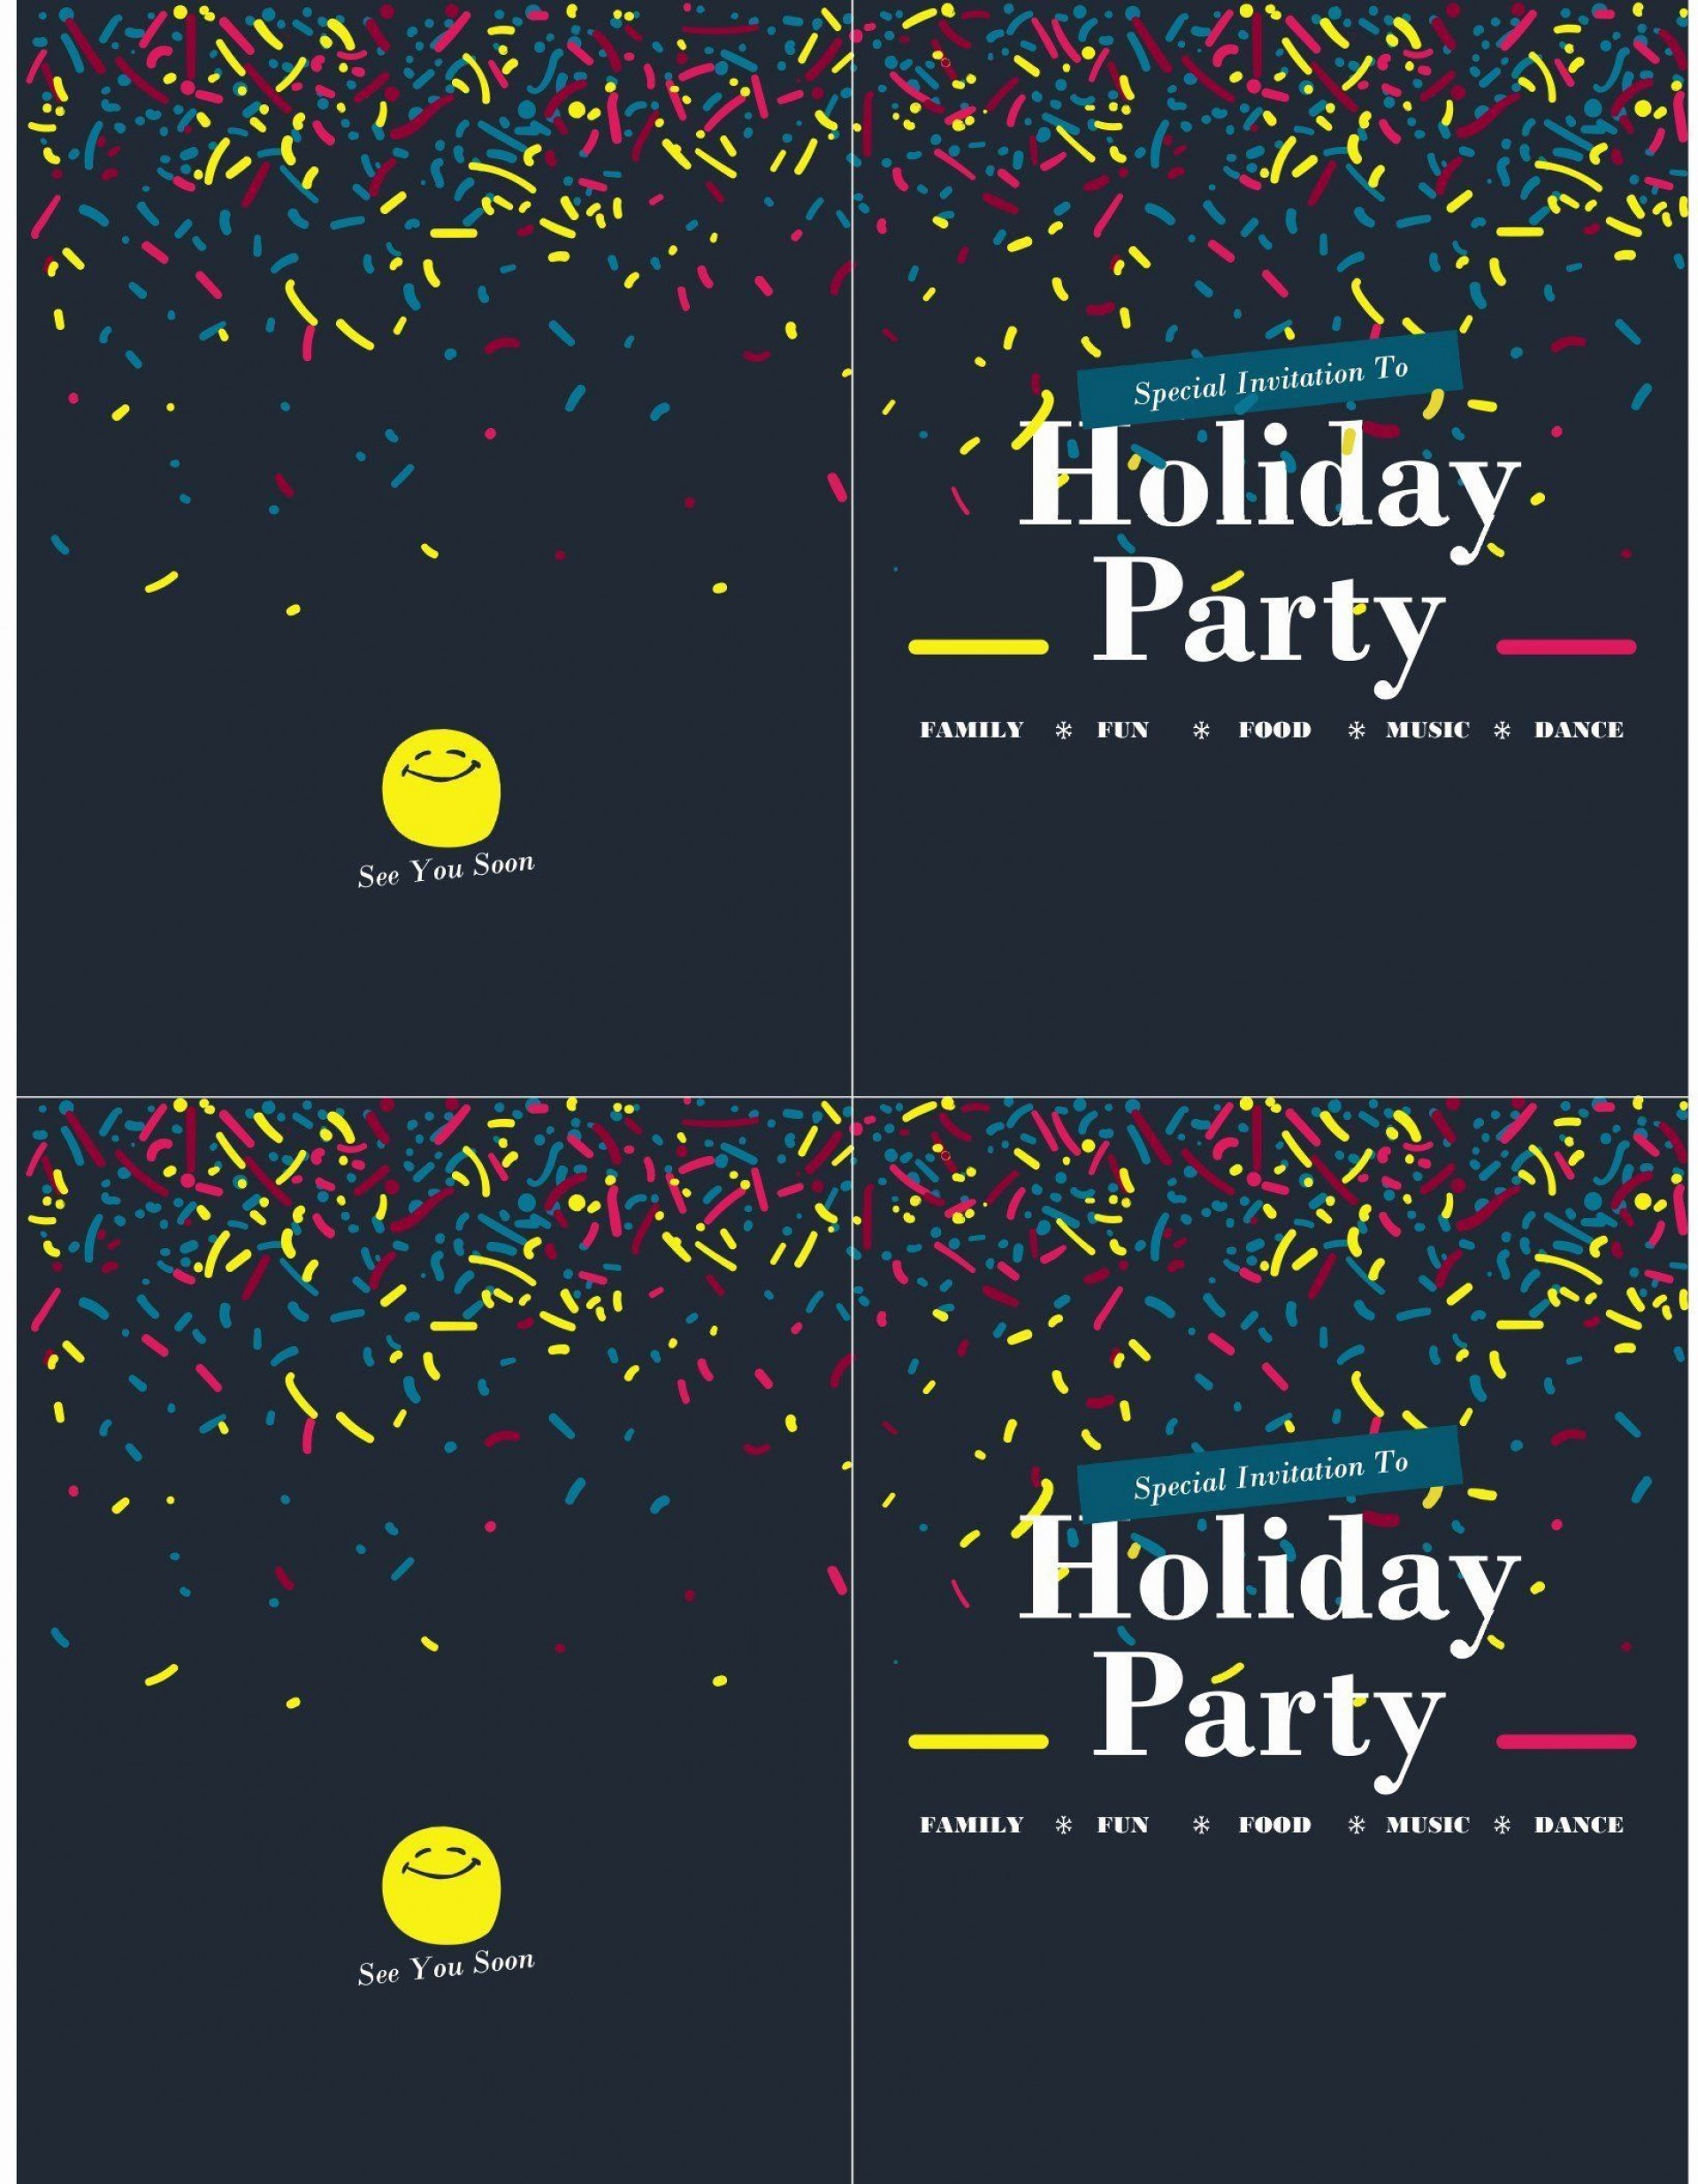 006 Awesome Microsoft Office Invitation Template Picture  Templates Holiday Party Publisher1920